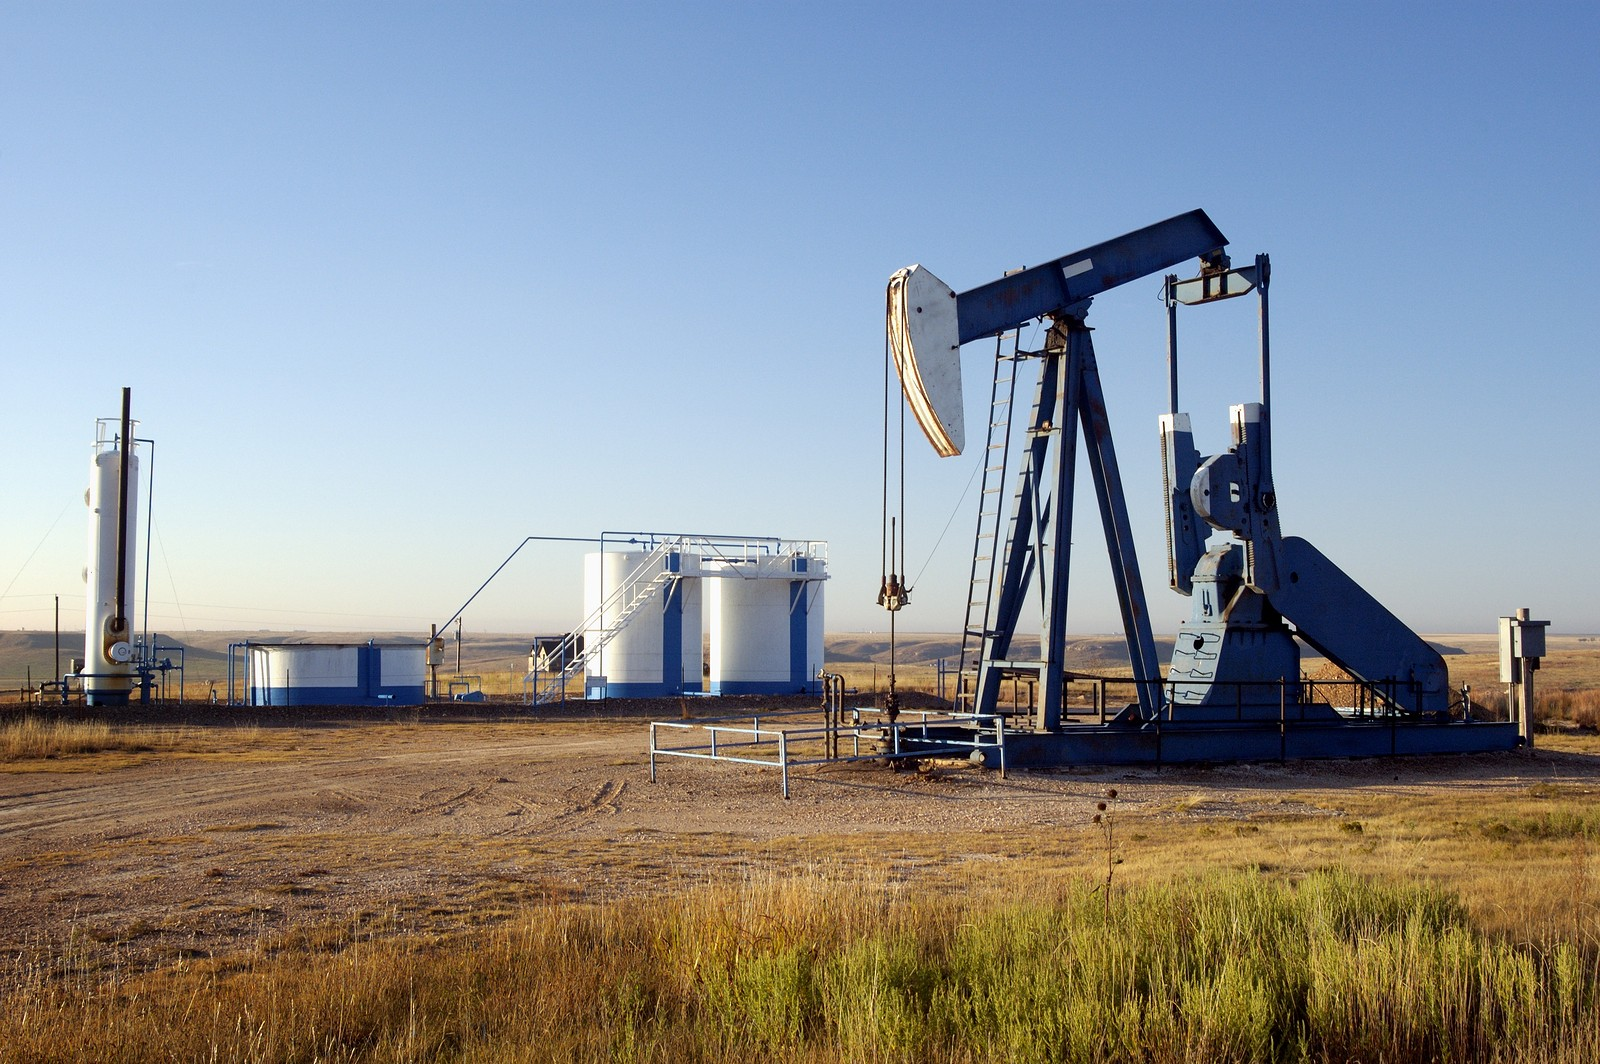 Oil well + storage tanks